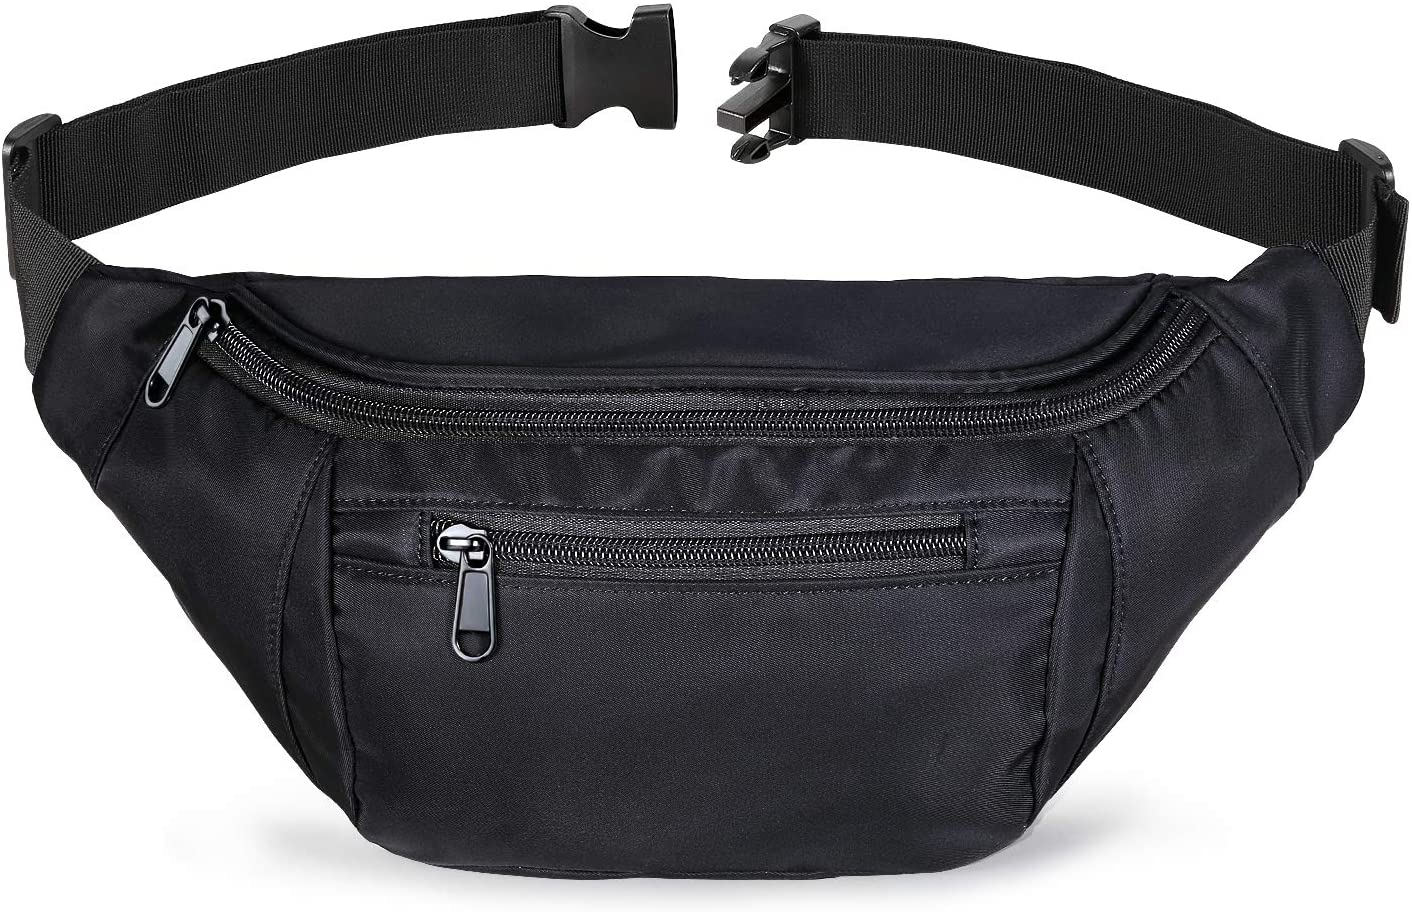 Fanny Packs for Women and Men, Black Waist Bag Fanny pack for Teen Boys Girls, Plus Size Belt Bags Hip Bum Pouch with Multi-pockets, Large Waist Pack for Running, Travel, Hiking, Cycling, Dog Walking